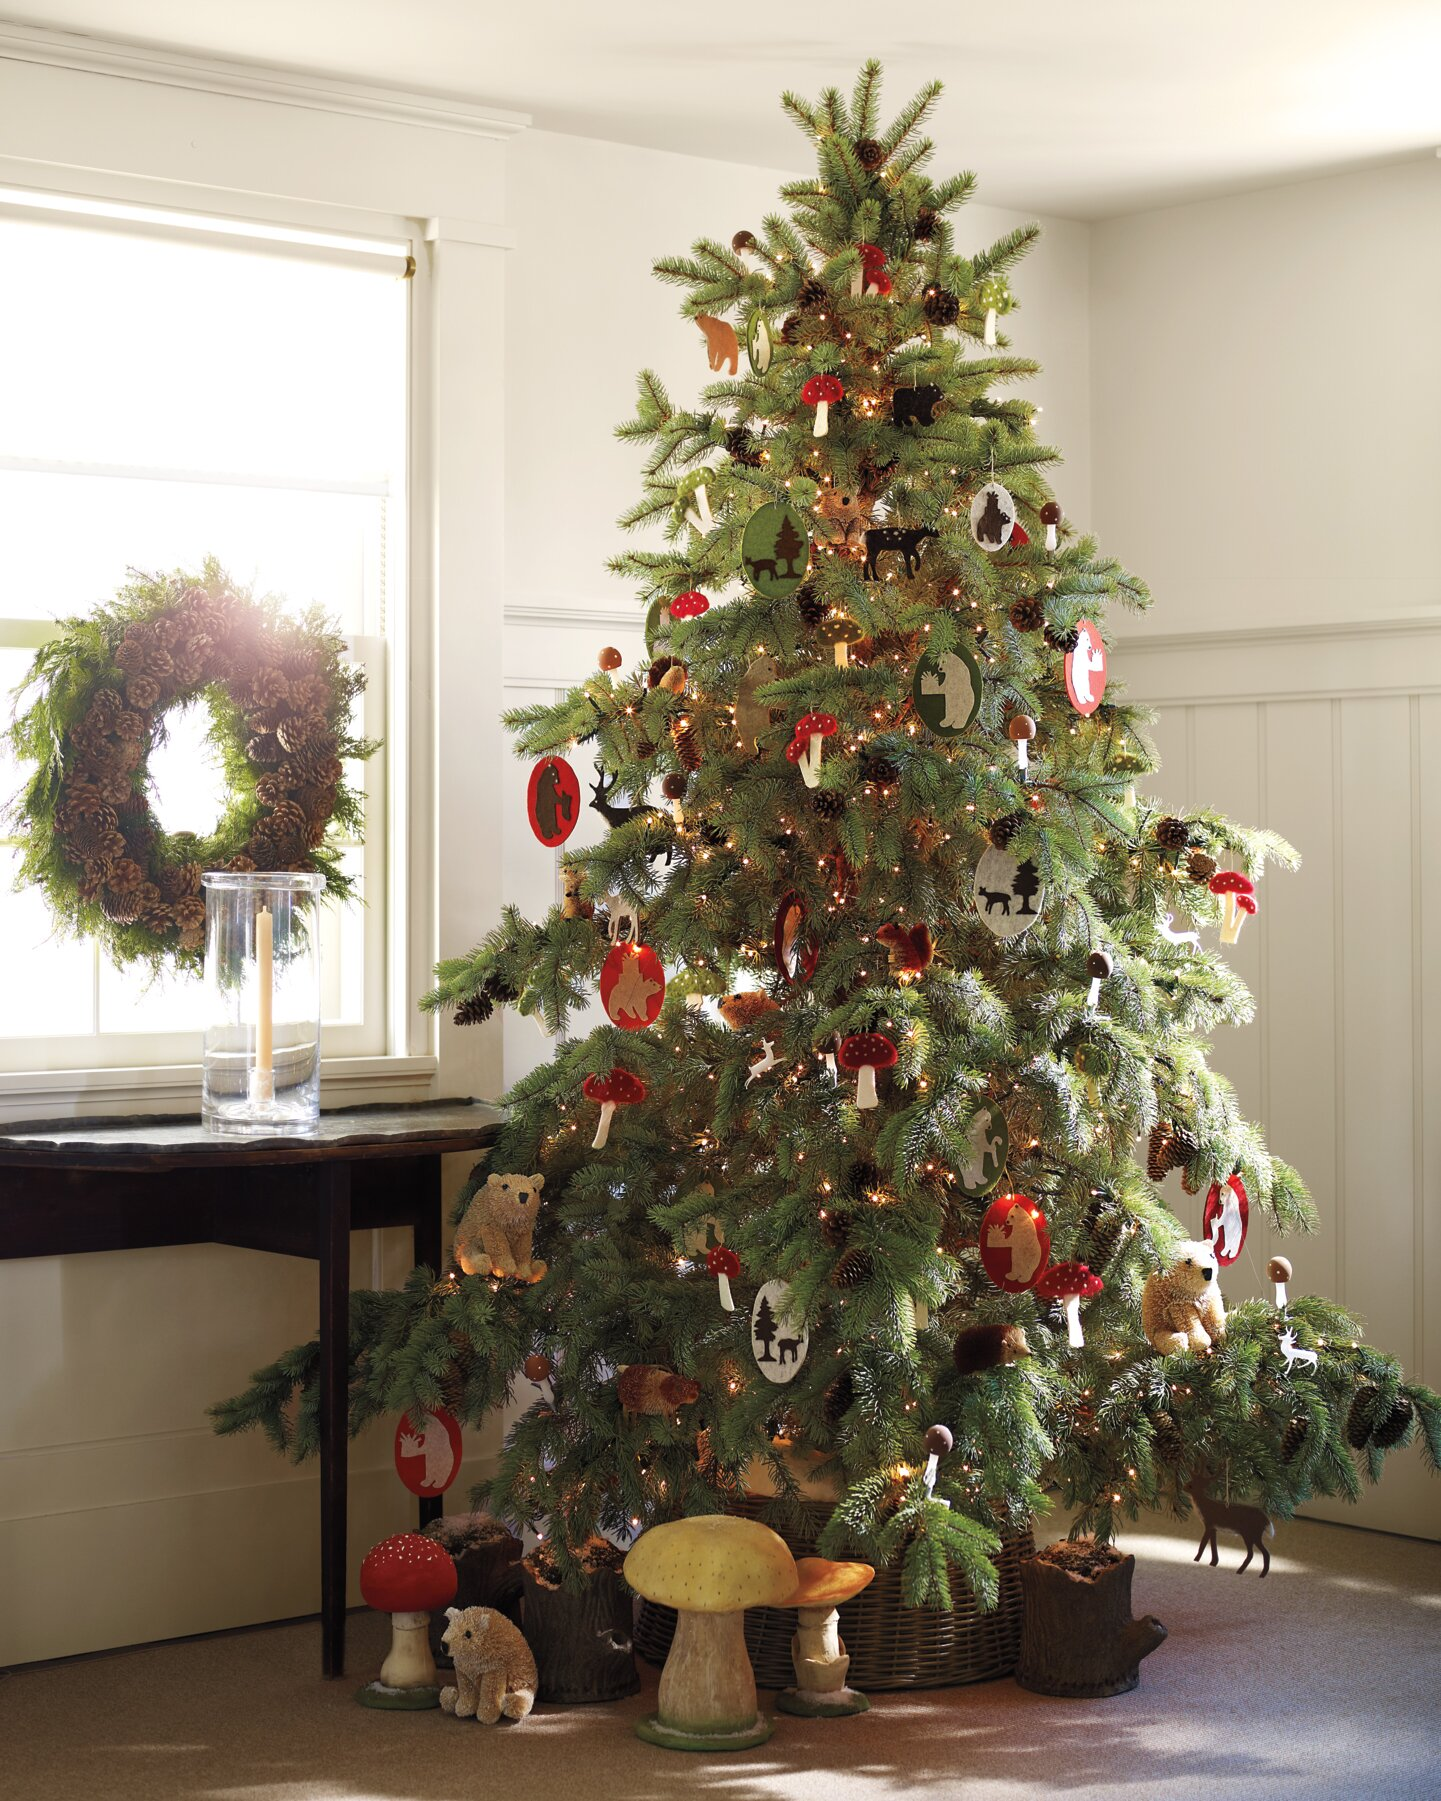 Bugs In Christmas Trees.What To Do If You Have Bugs In Your Christmas Tree Martha